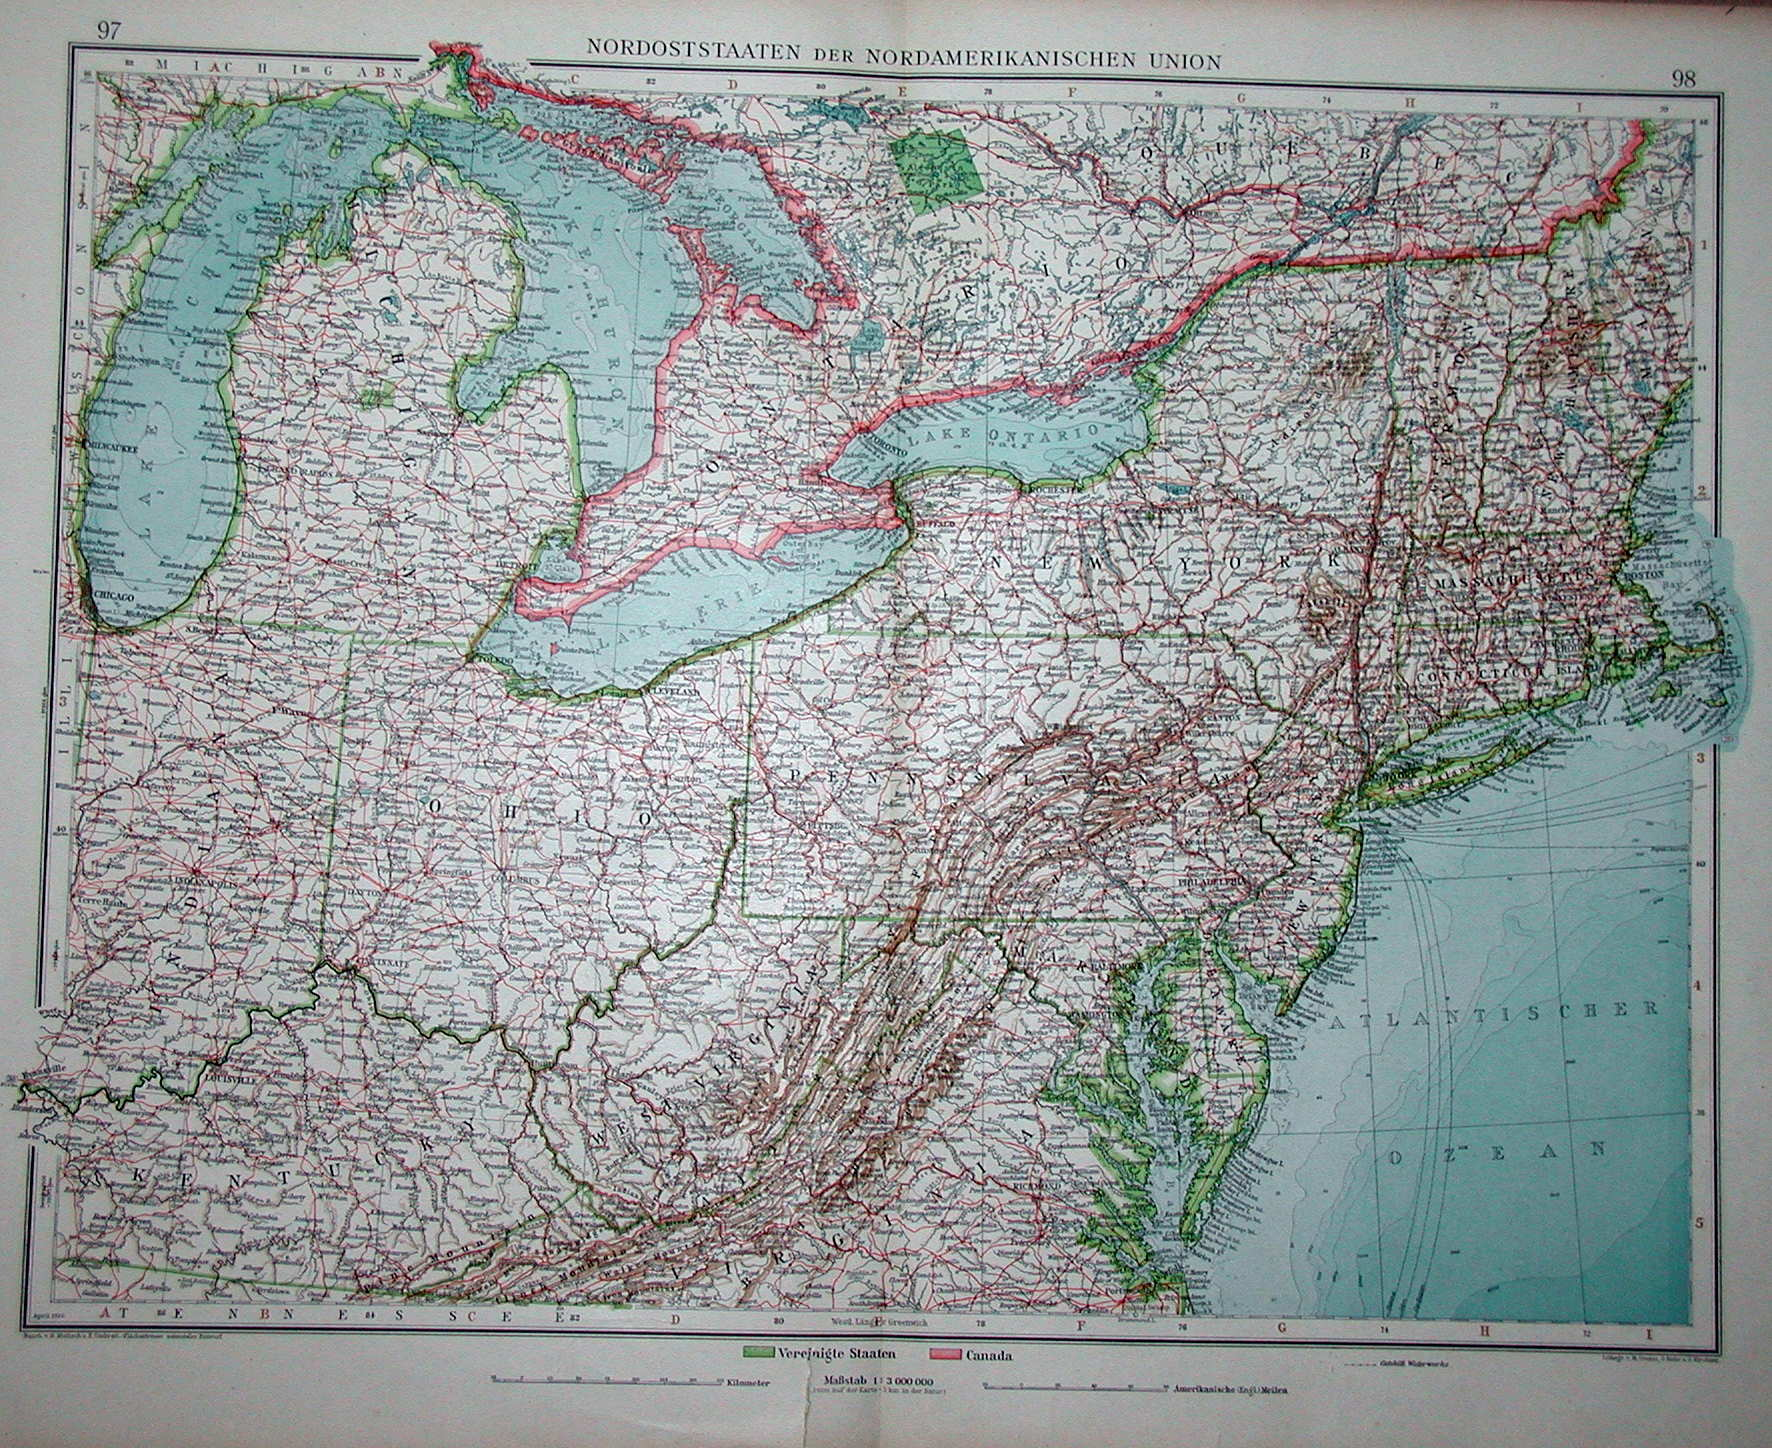 UNITED STATES NORTH EAST New England Appalachia Atlantic States - 1920s north eastern us map